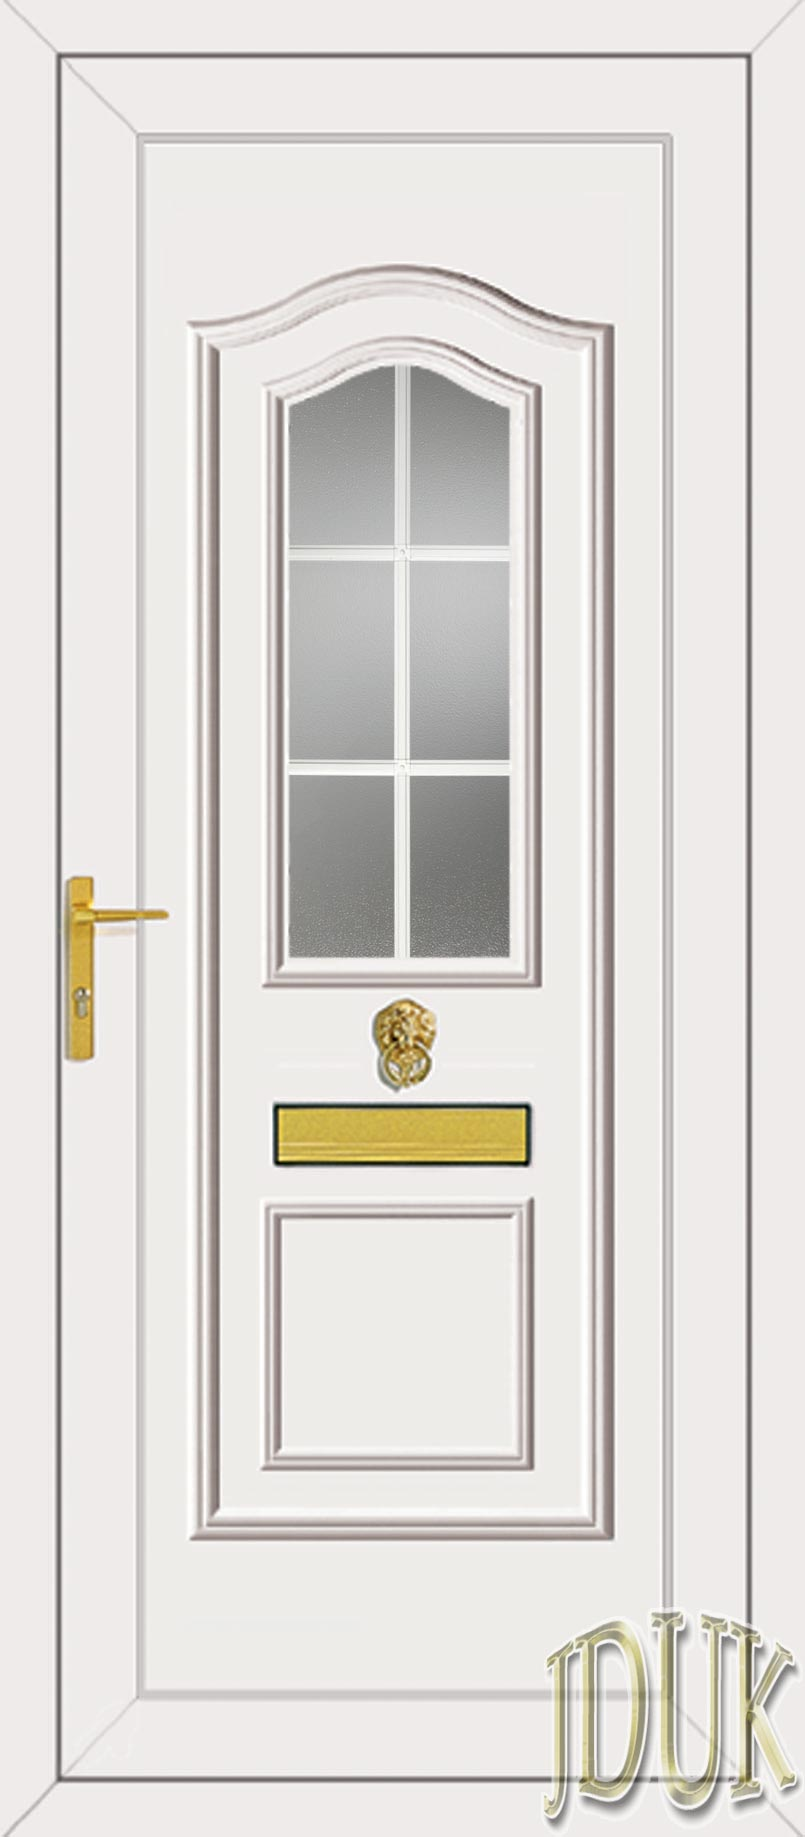 Standard specification for Upvc french doors with georgian bar